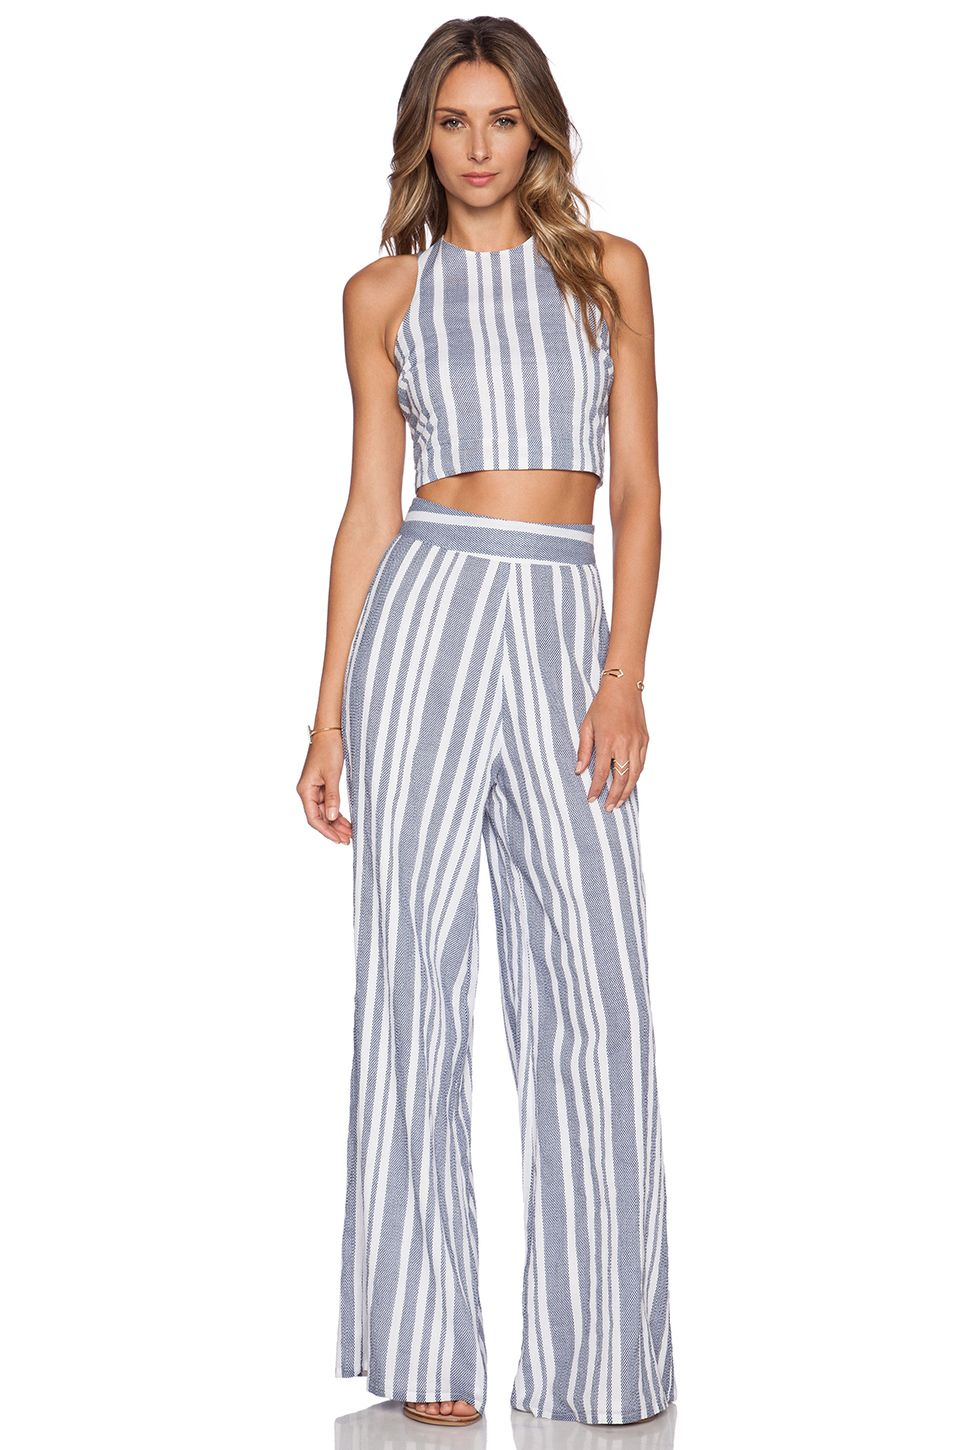 85848011a6e Nikki Reed for REVOLVE Marley Pant in Blue   White